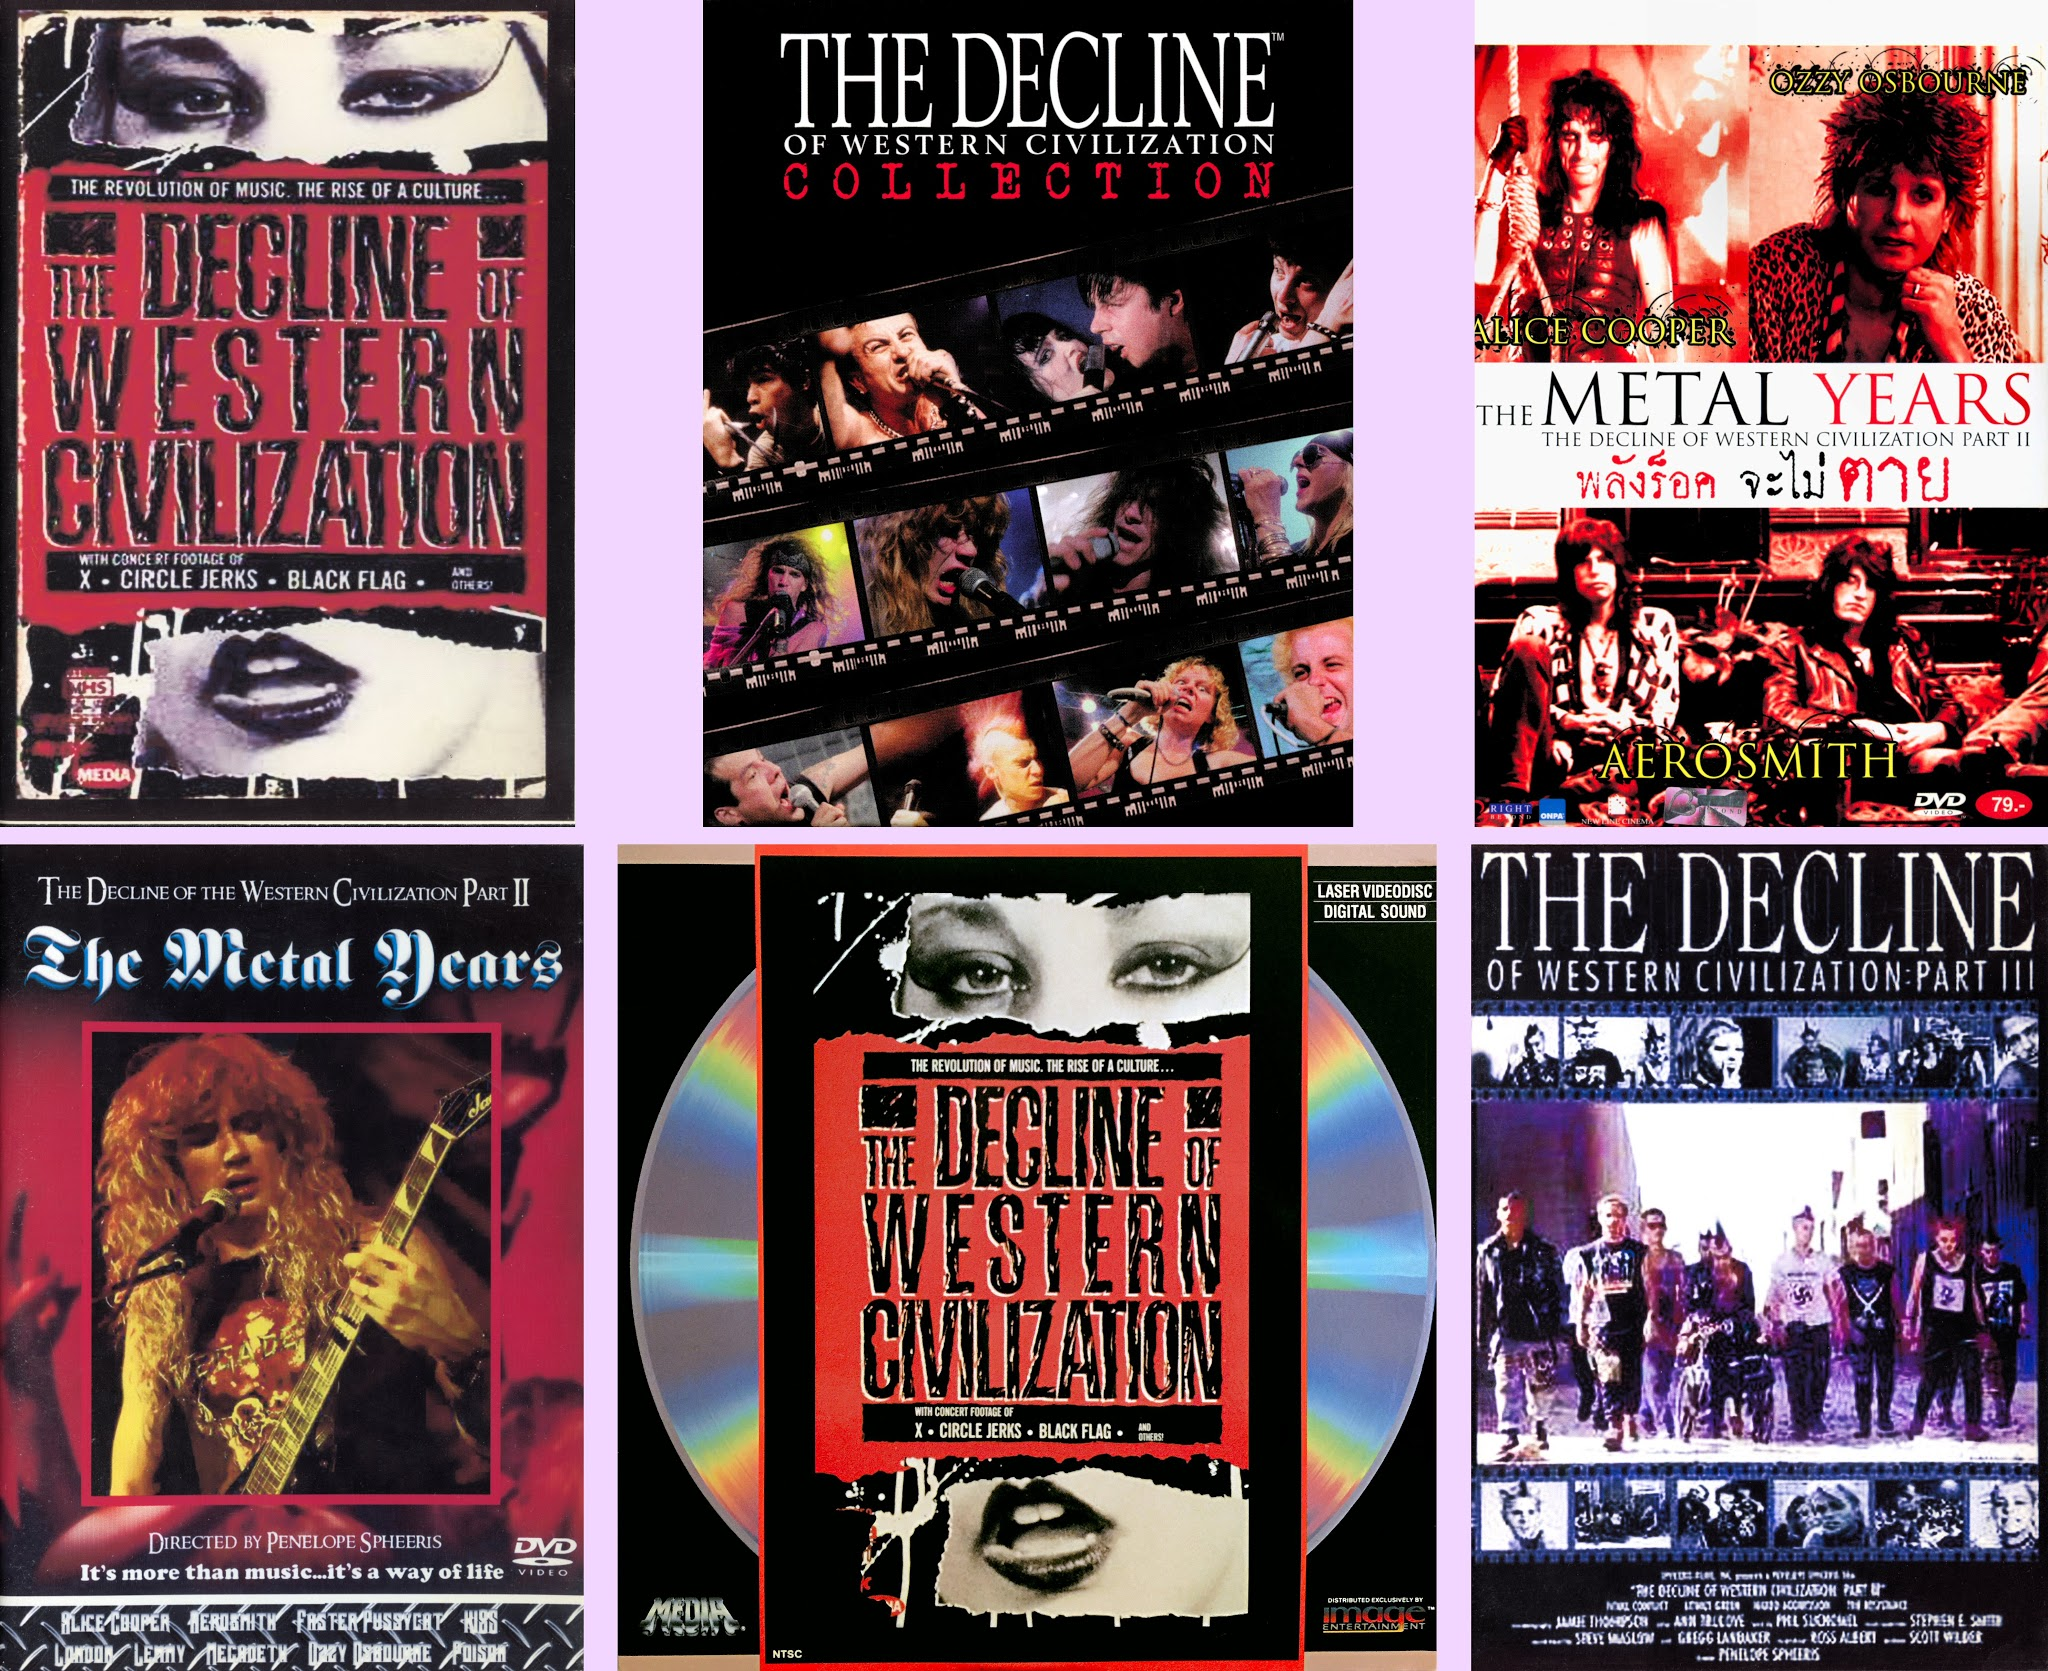 DVD Exotica: Sit Back and Watch the Complete Decline of